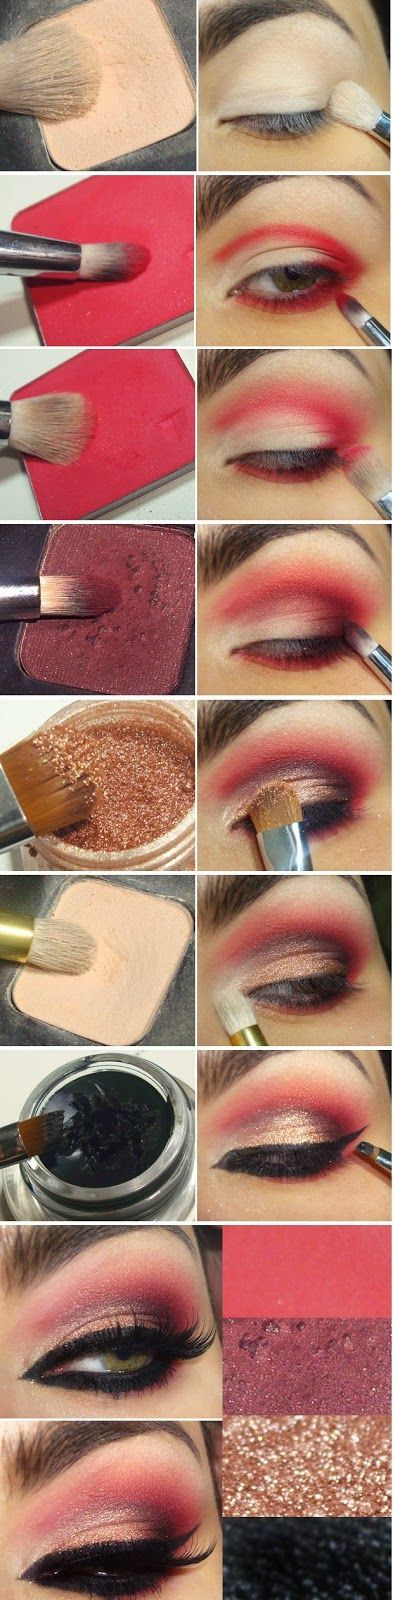 12 Fierce Eyeshadow Tutorials For Beginners